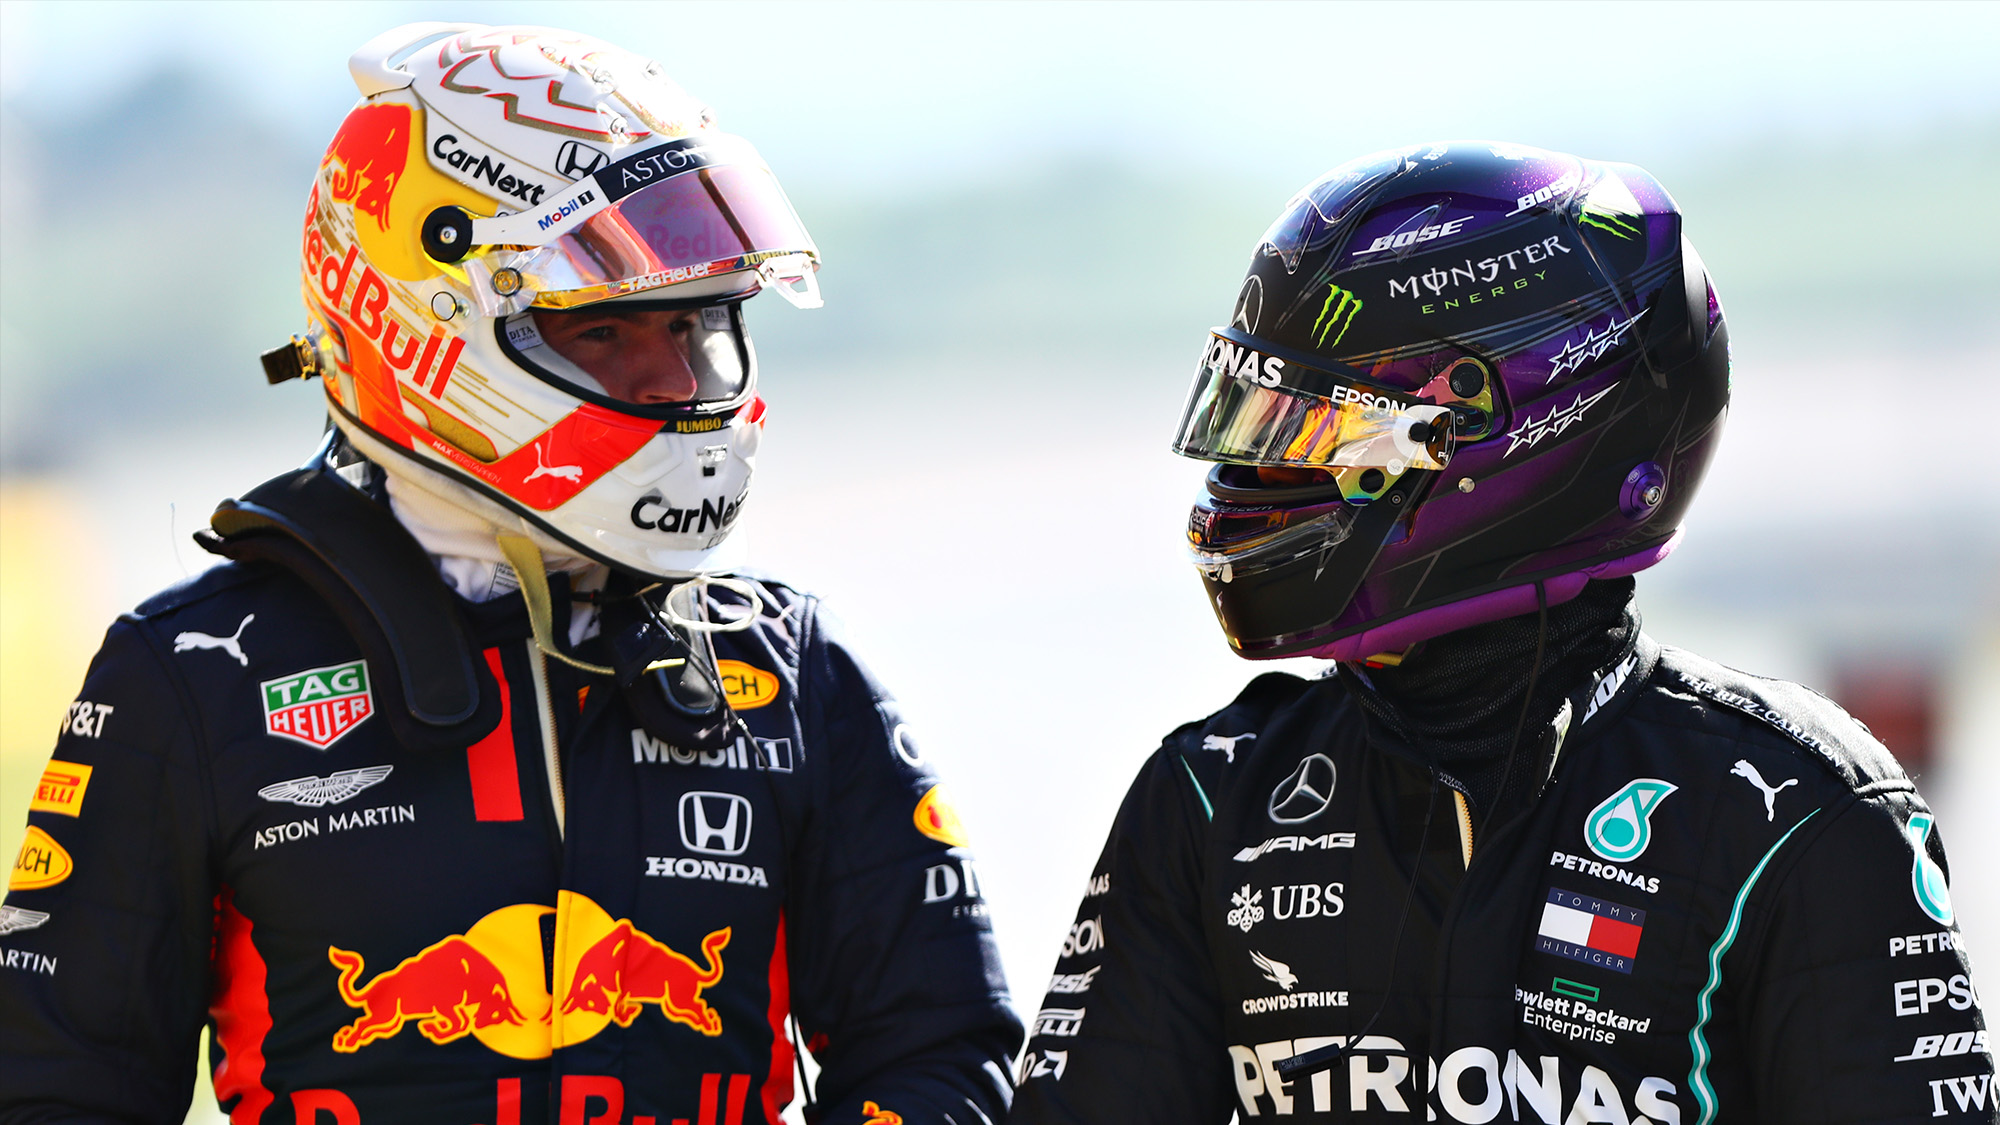 Hamilton vs Verstappen — finally the F1 battle we've been waiting for? MPH